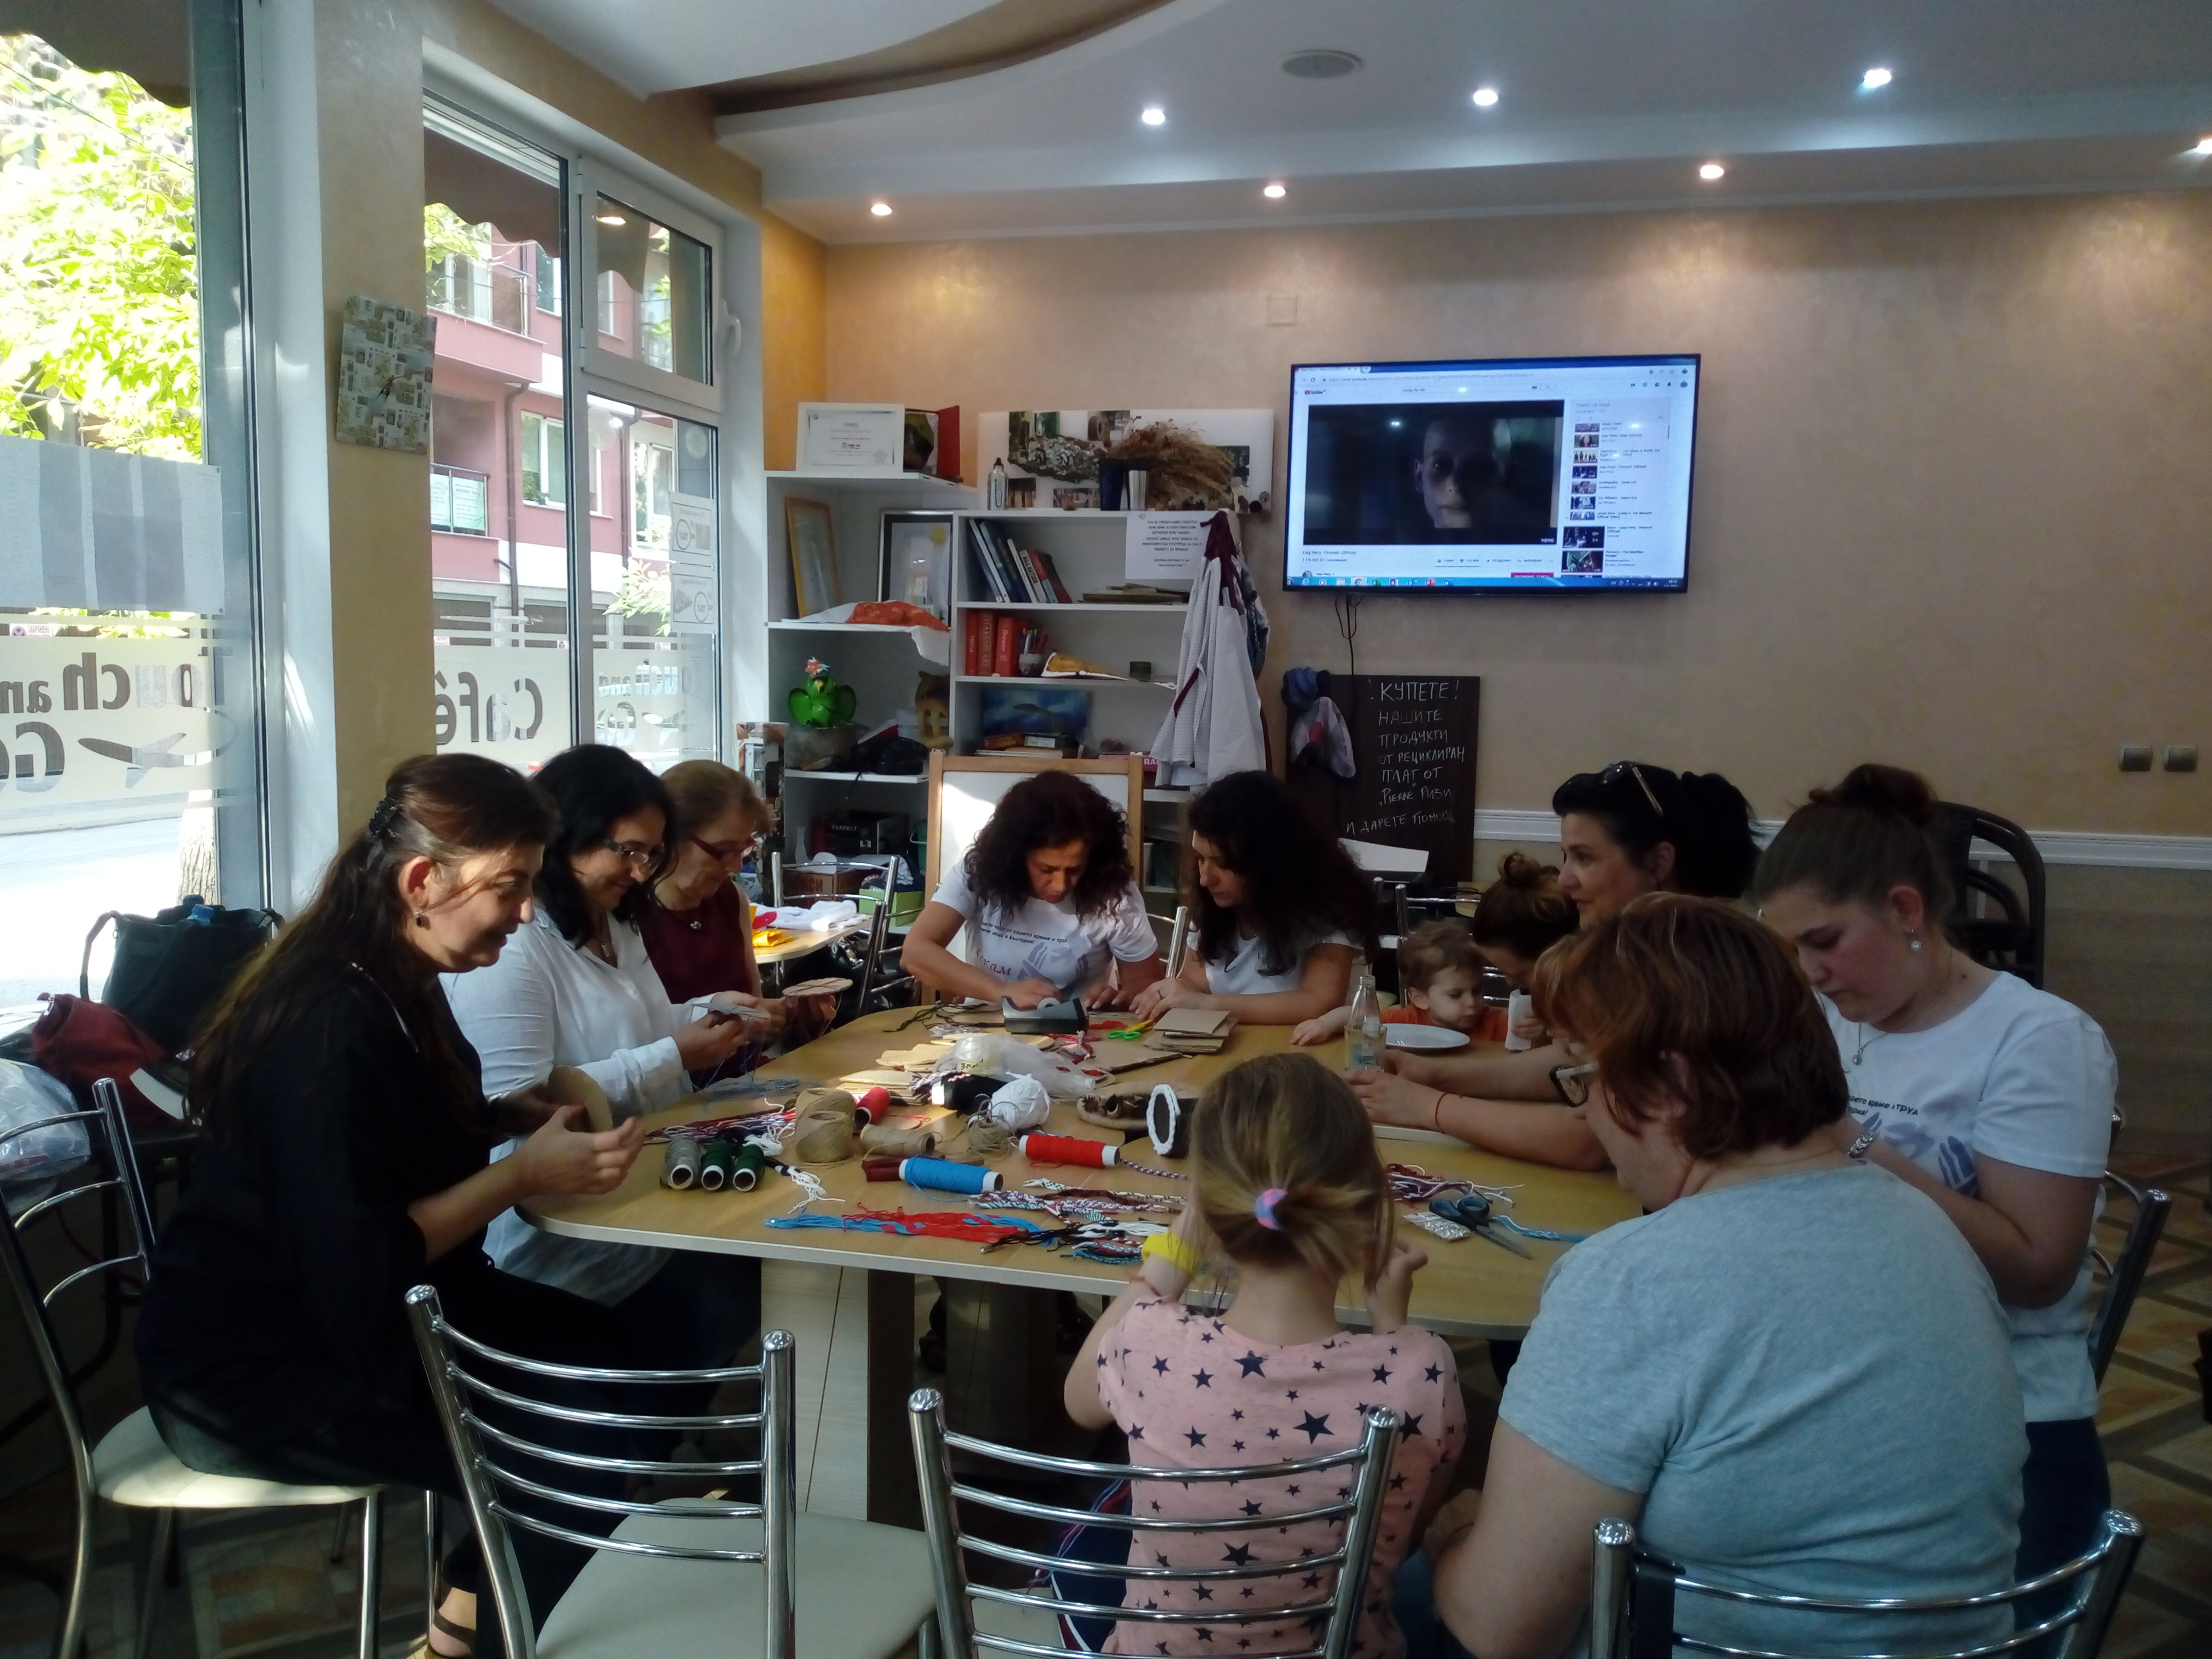 Being A Force For Good Doesn't Need To Cost The Earth – Bulgaria's First Social Friday